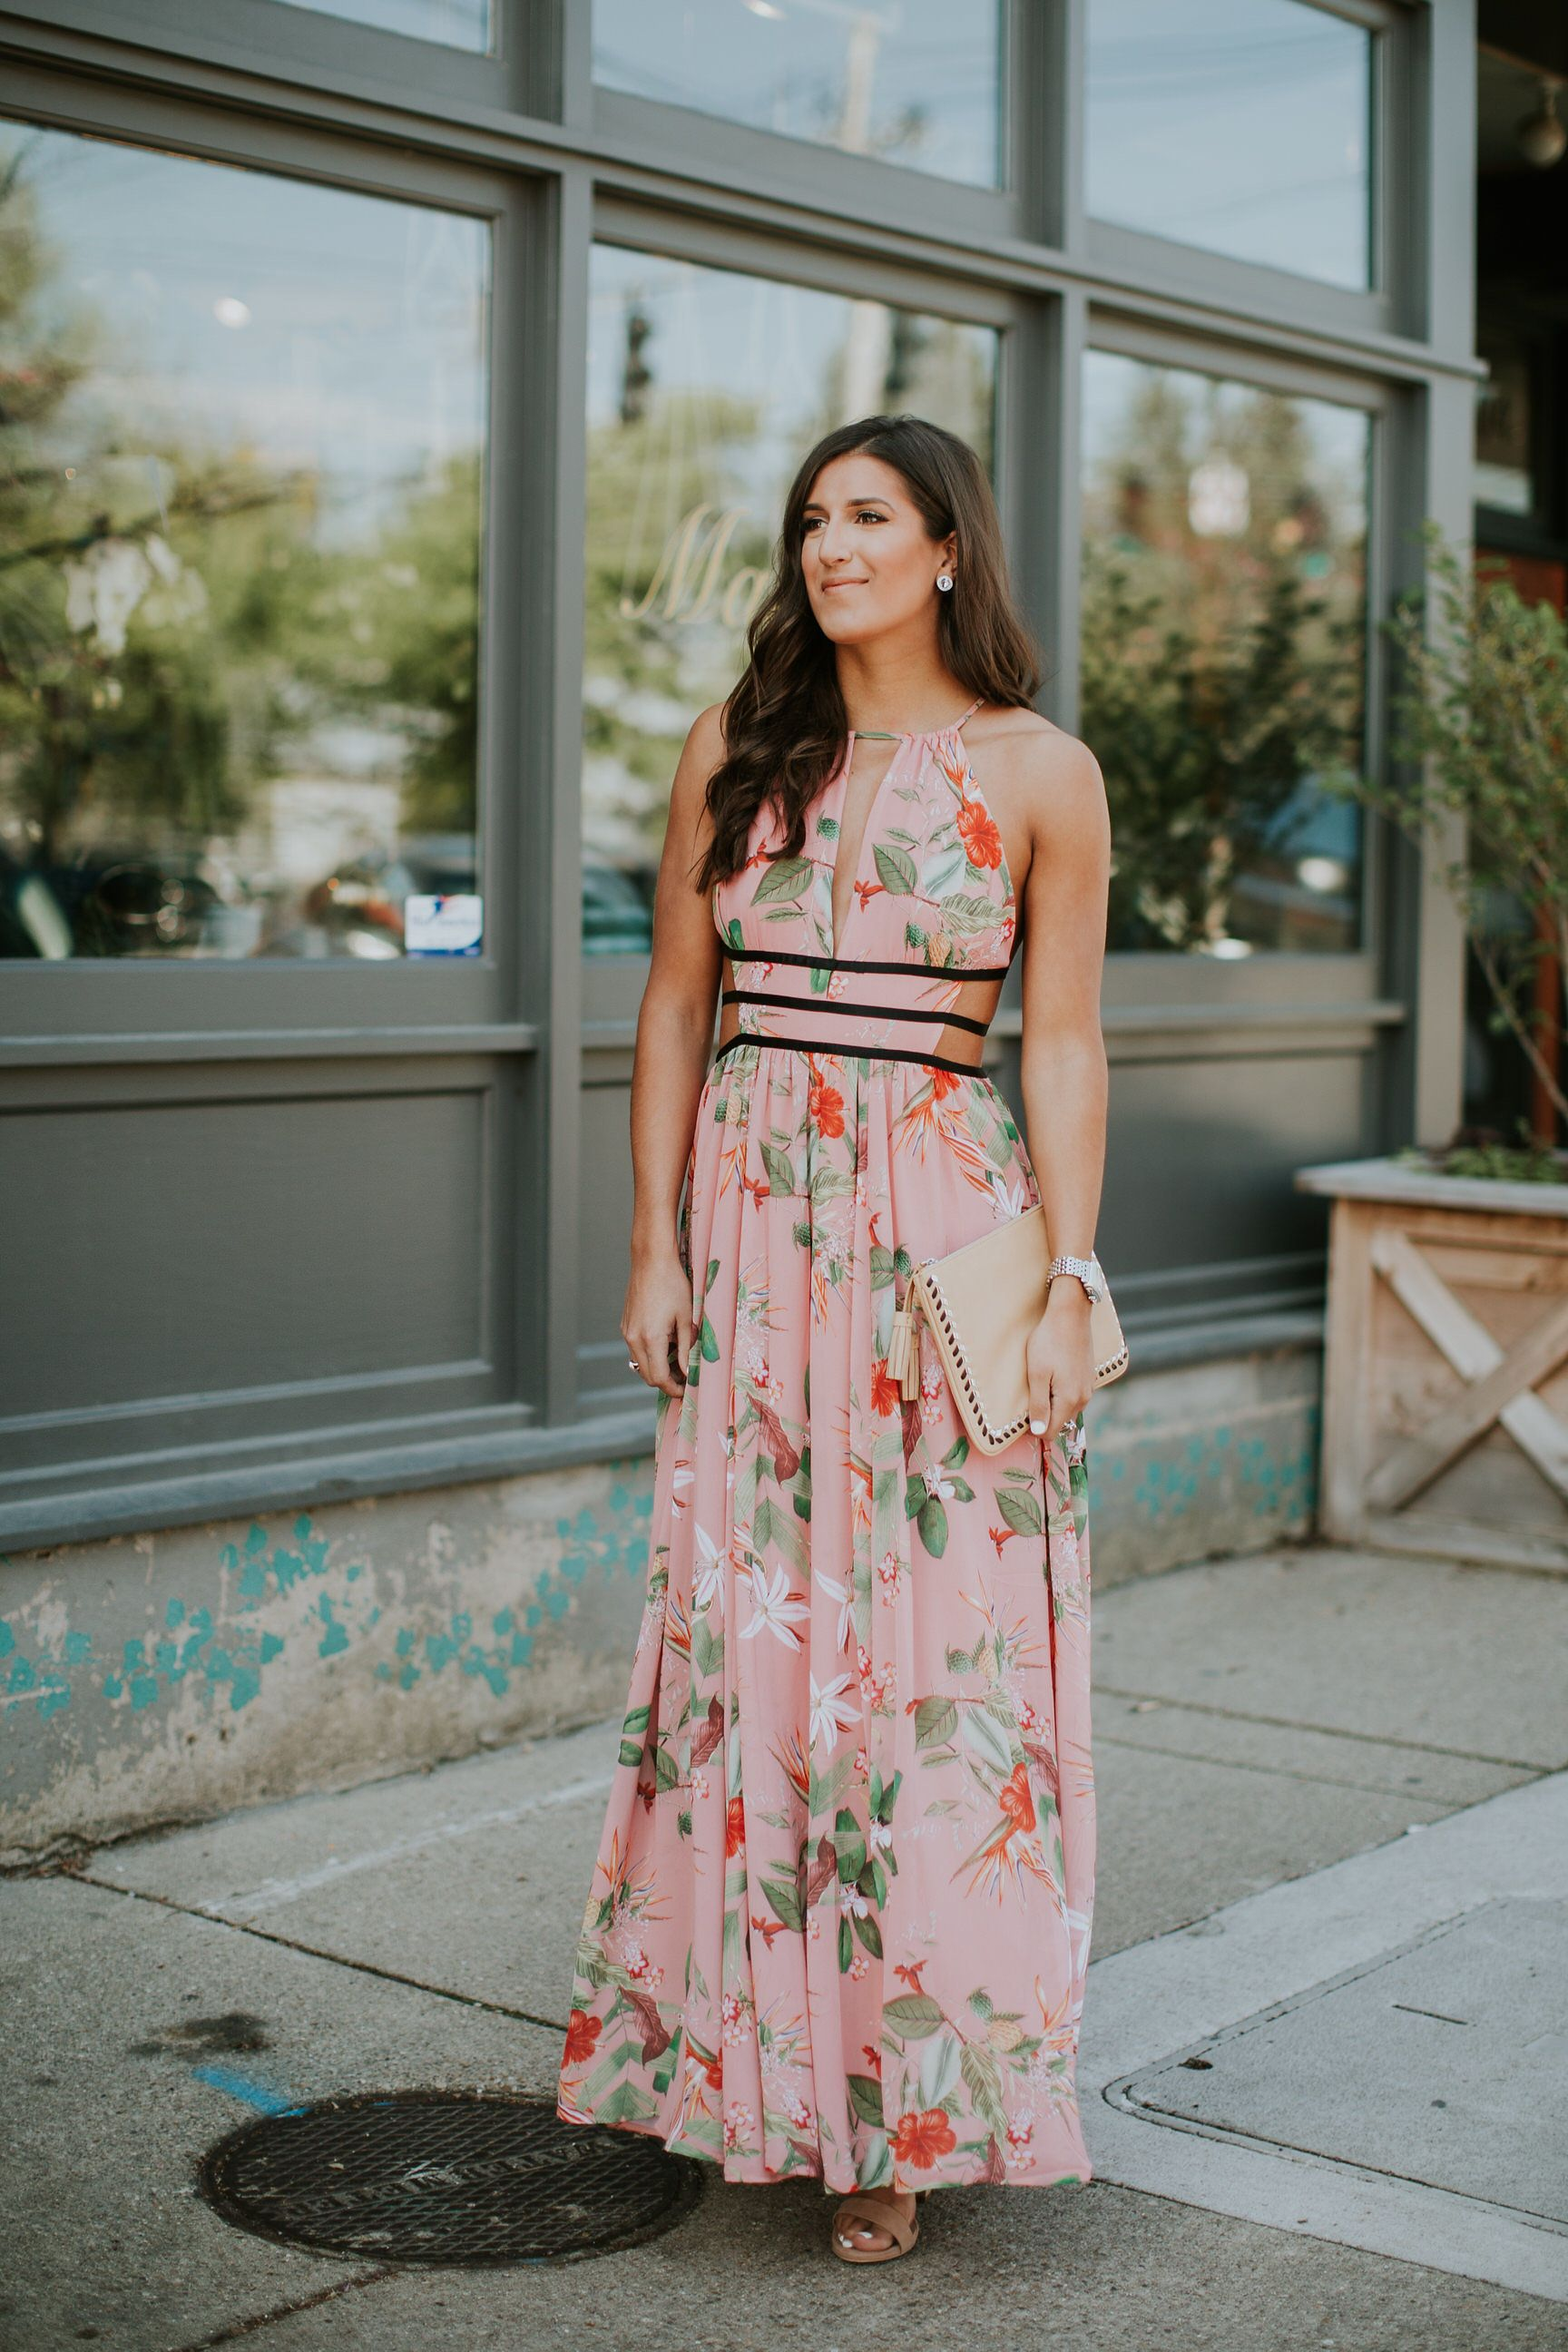 Floral Maxi Dress | Floral maxi dress, Floral maxi and Spring style